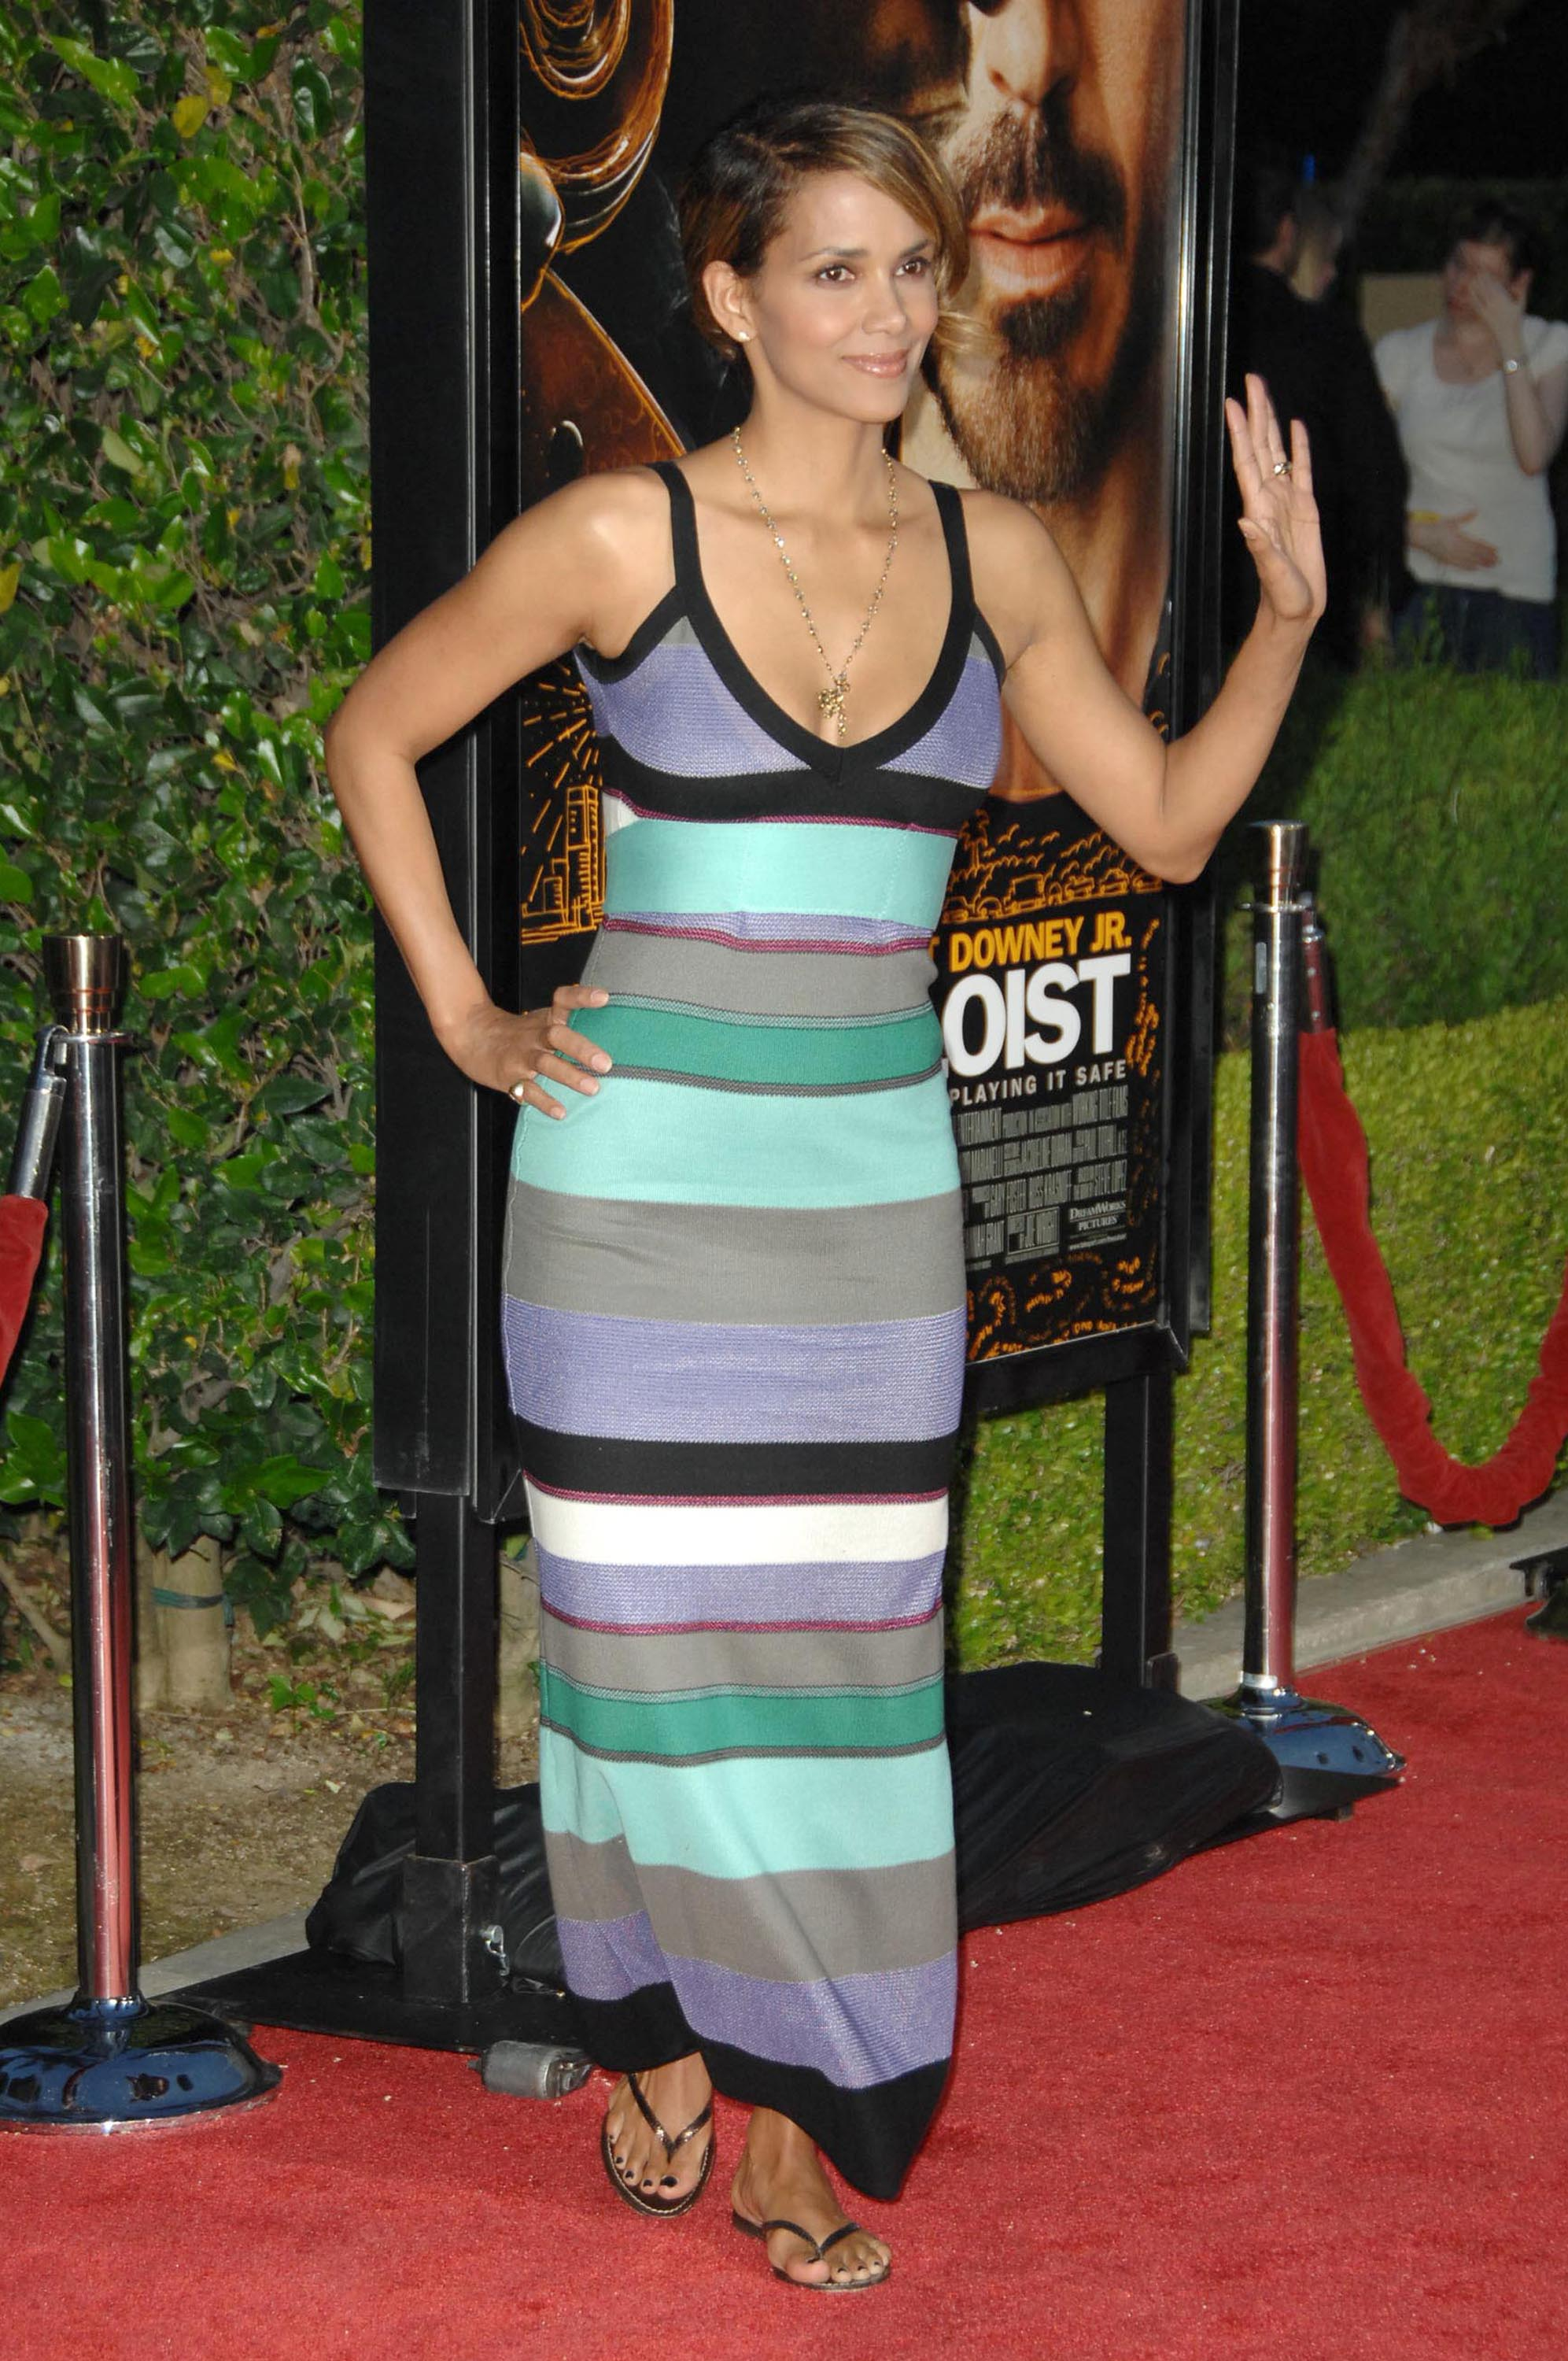 65736_Halle_Berry_The_Soloist_premiere_in_Los_Angeles_71_122_384lo.jpg